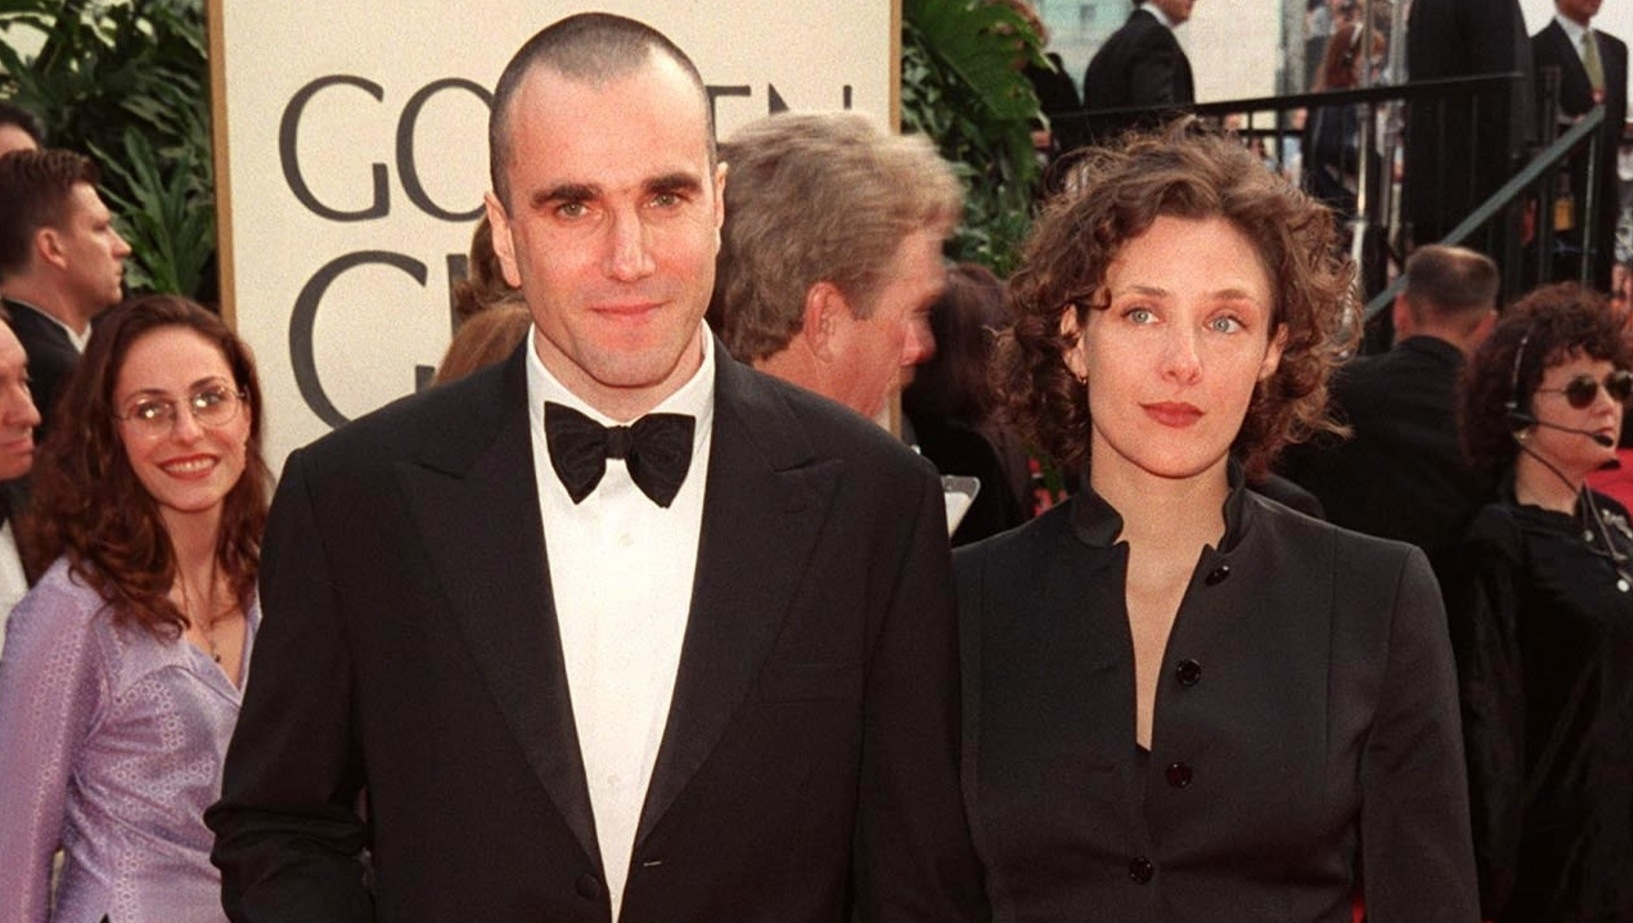 Daniel Day-Lewis with his wife Rebecca Miller at the Golden Globe Awards